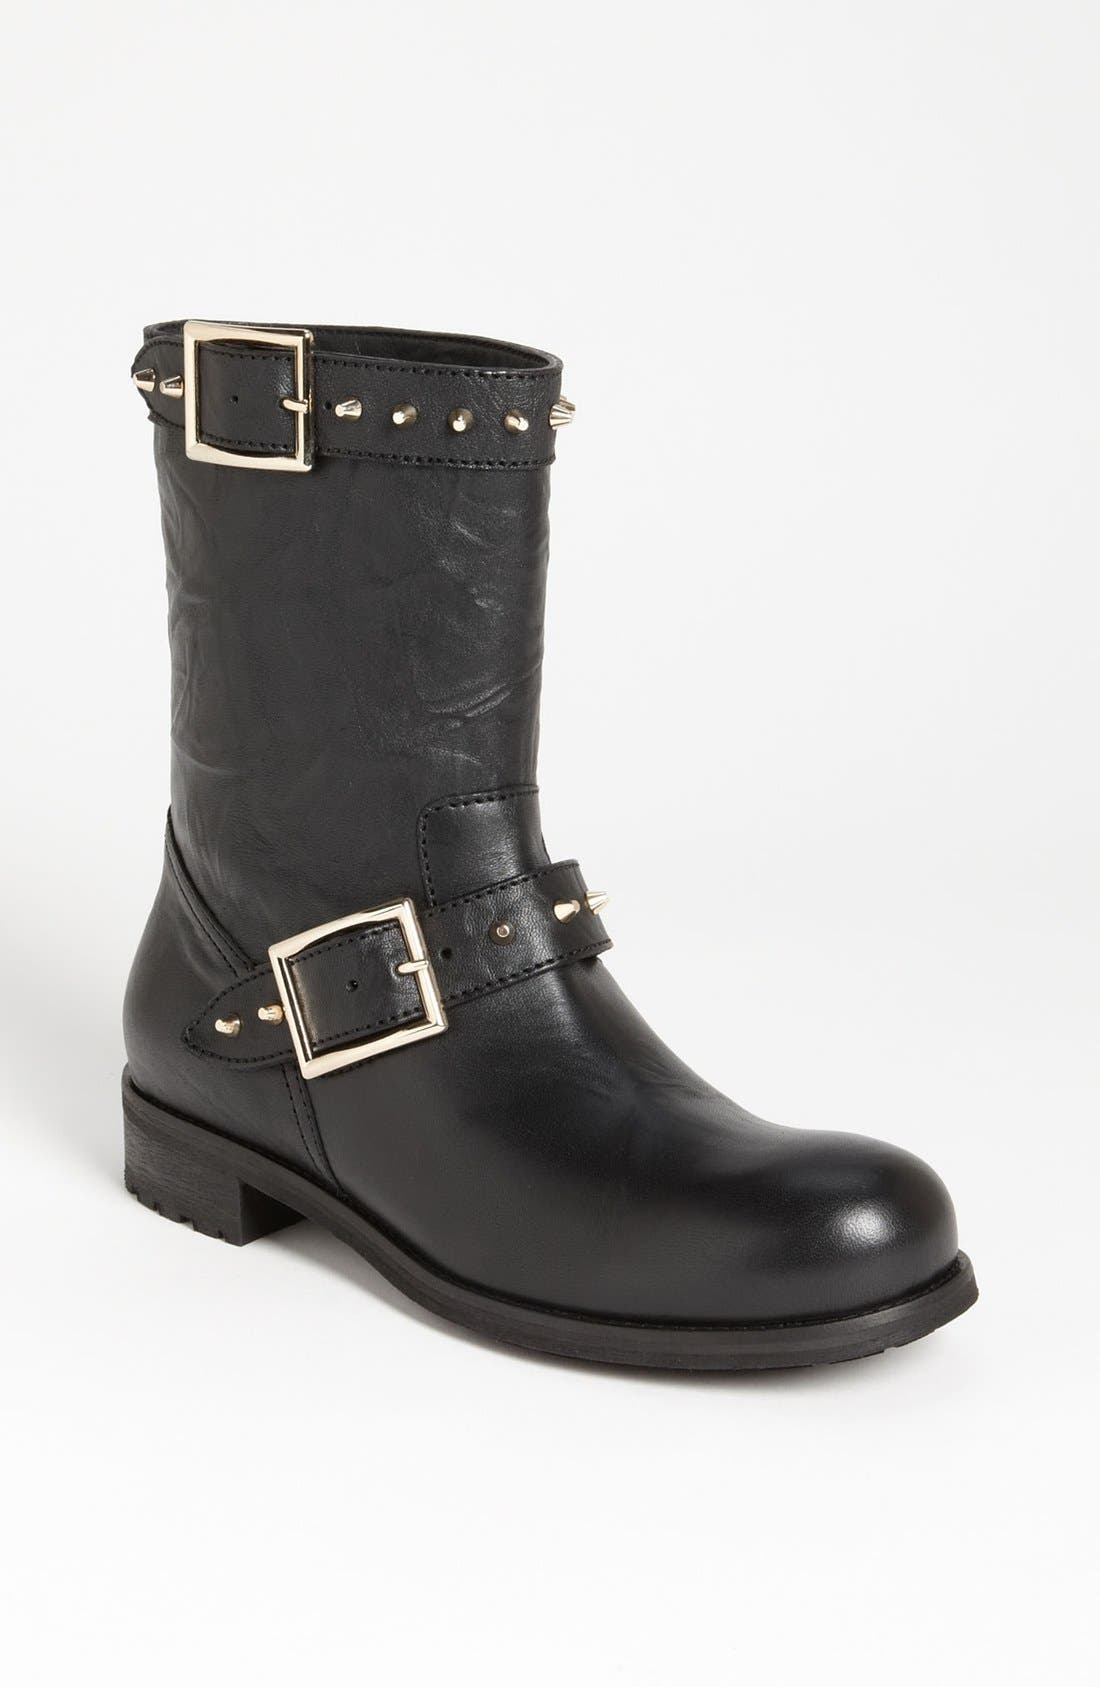 Main Image - Jimmy Choo 'Dash' Stud Biker Boot